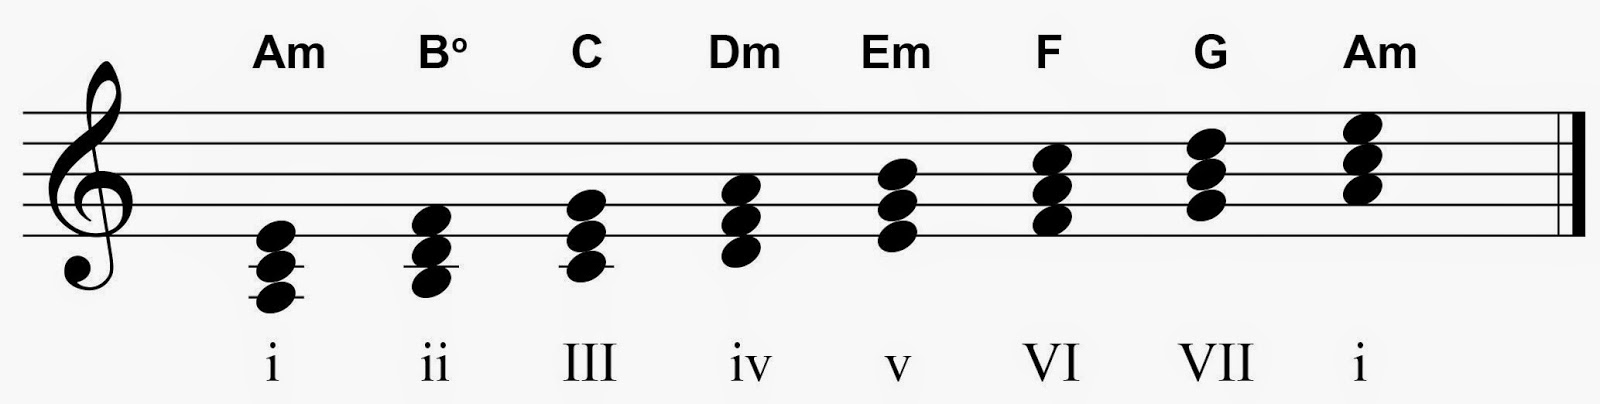 The Power of the Six Chord in Minor Key\'s... | Creative Guitar Studio